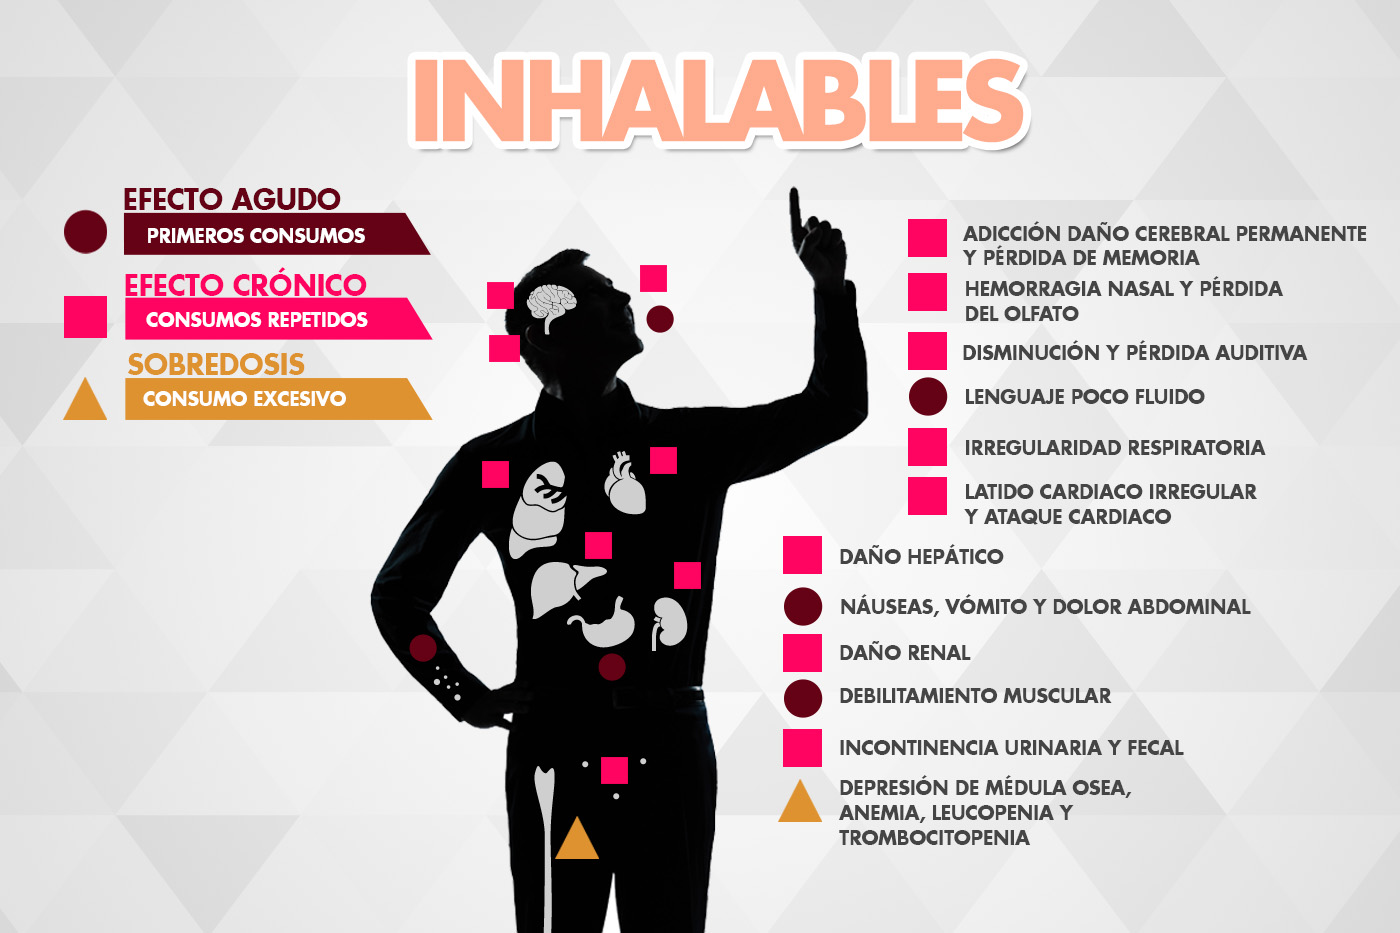 Síntomas del abuso a los inhalables